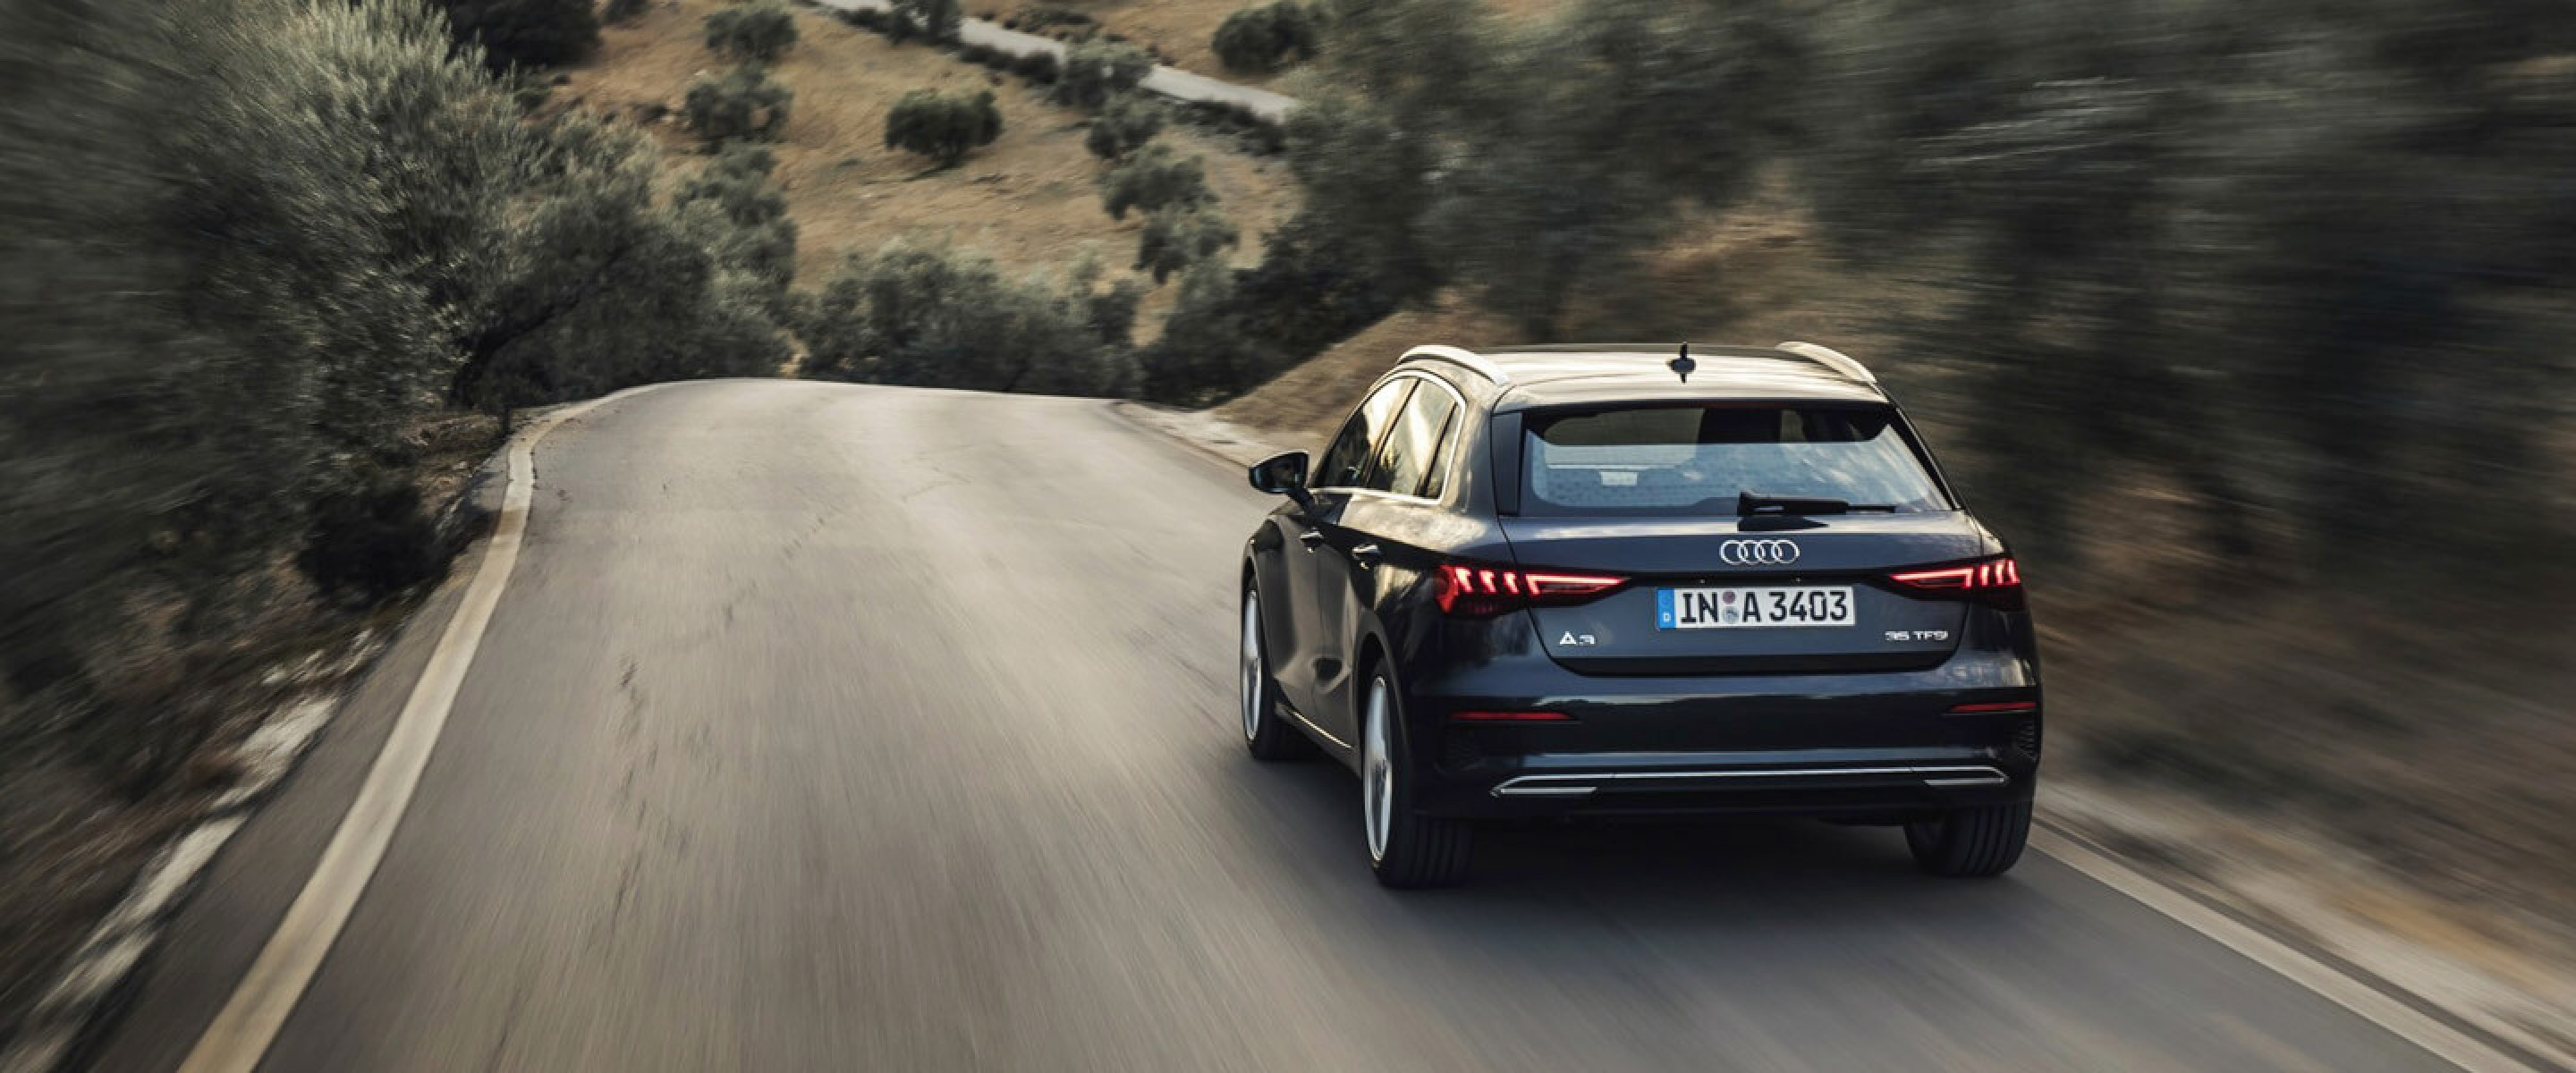 2102-audi-a3-sportback-online-only-private-lease-header.jpg